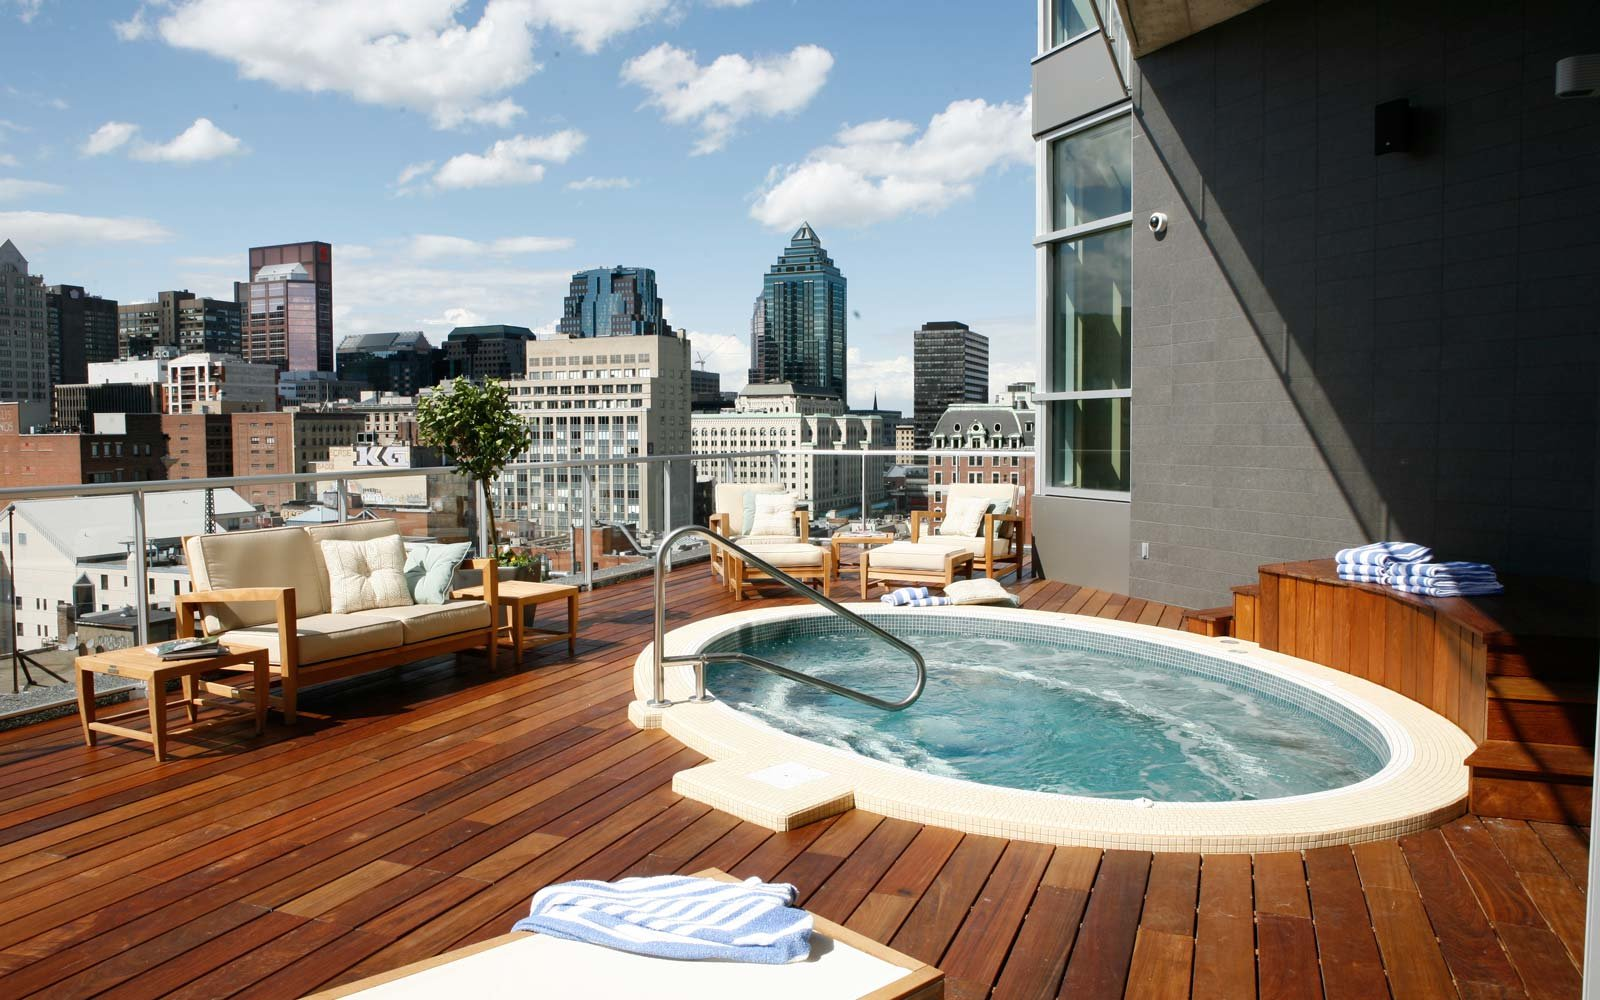 Hotel With Hot Tub In Room Nyc